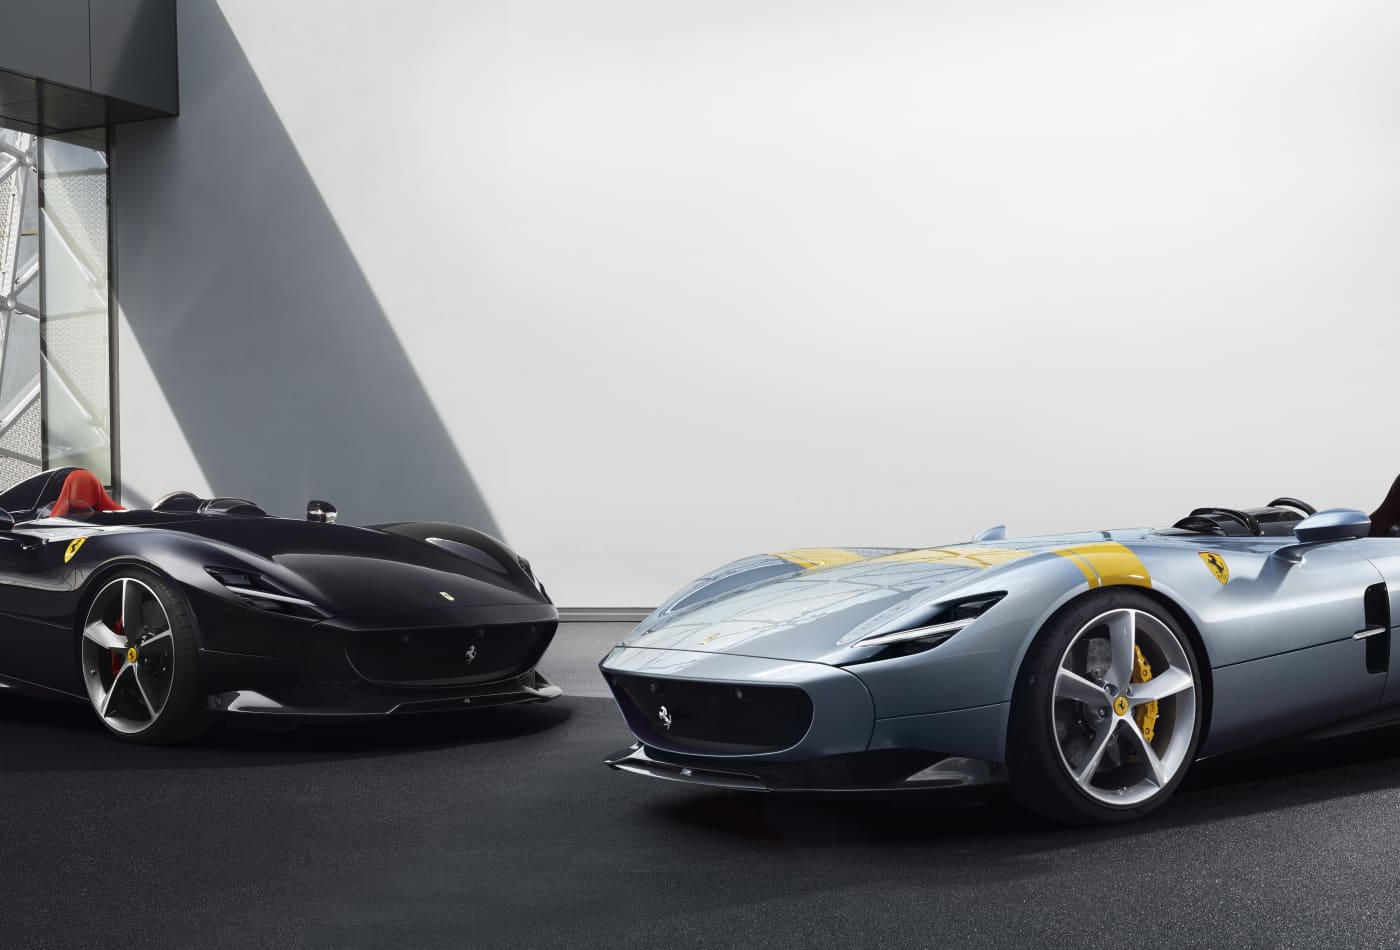 Ferrari Unveiled Two New Car Models On September 18 2018 They Are Led The Monza Sp1 And Sp2